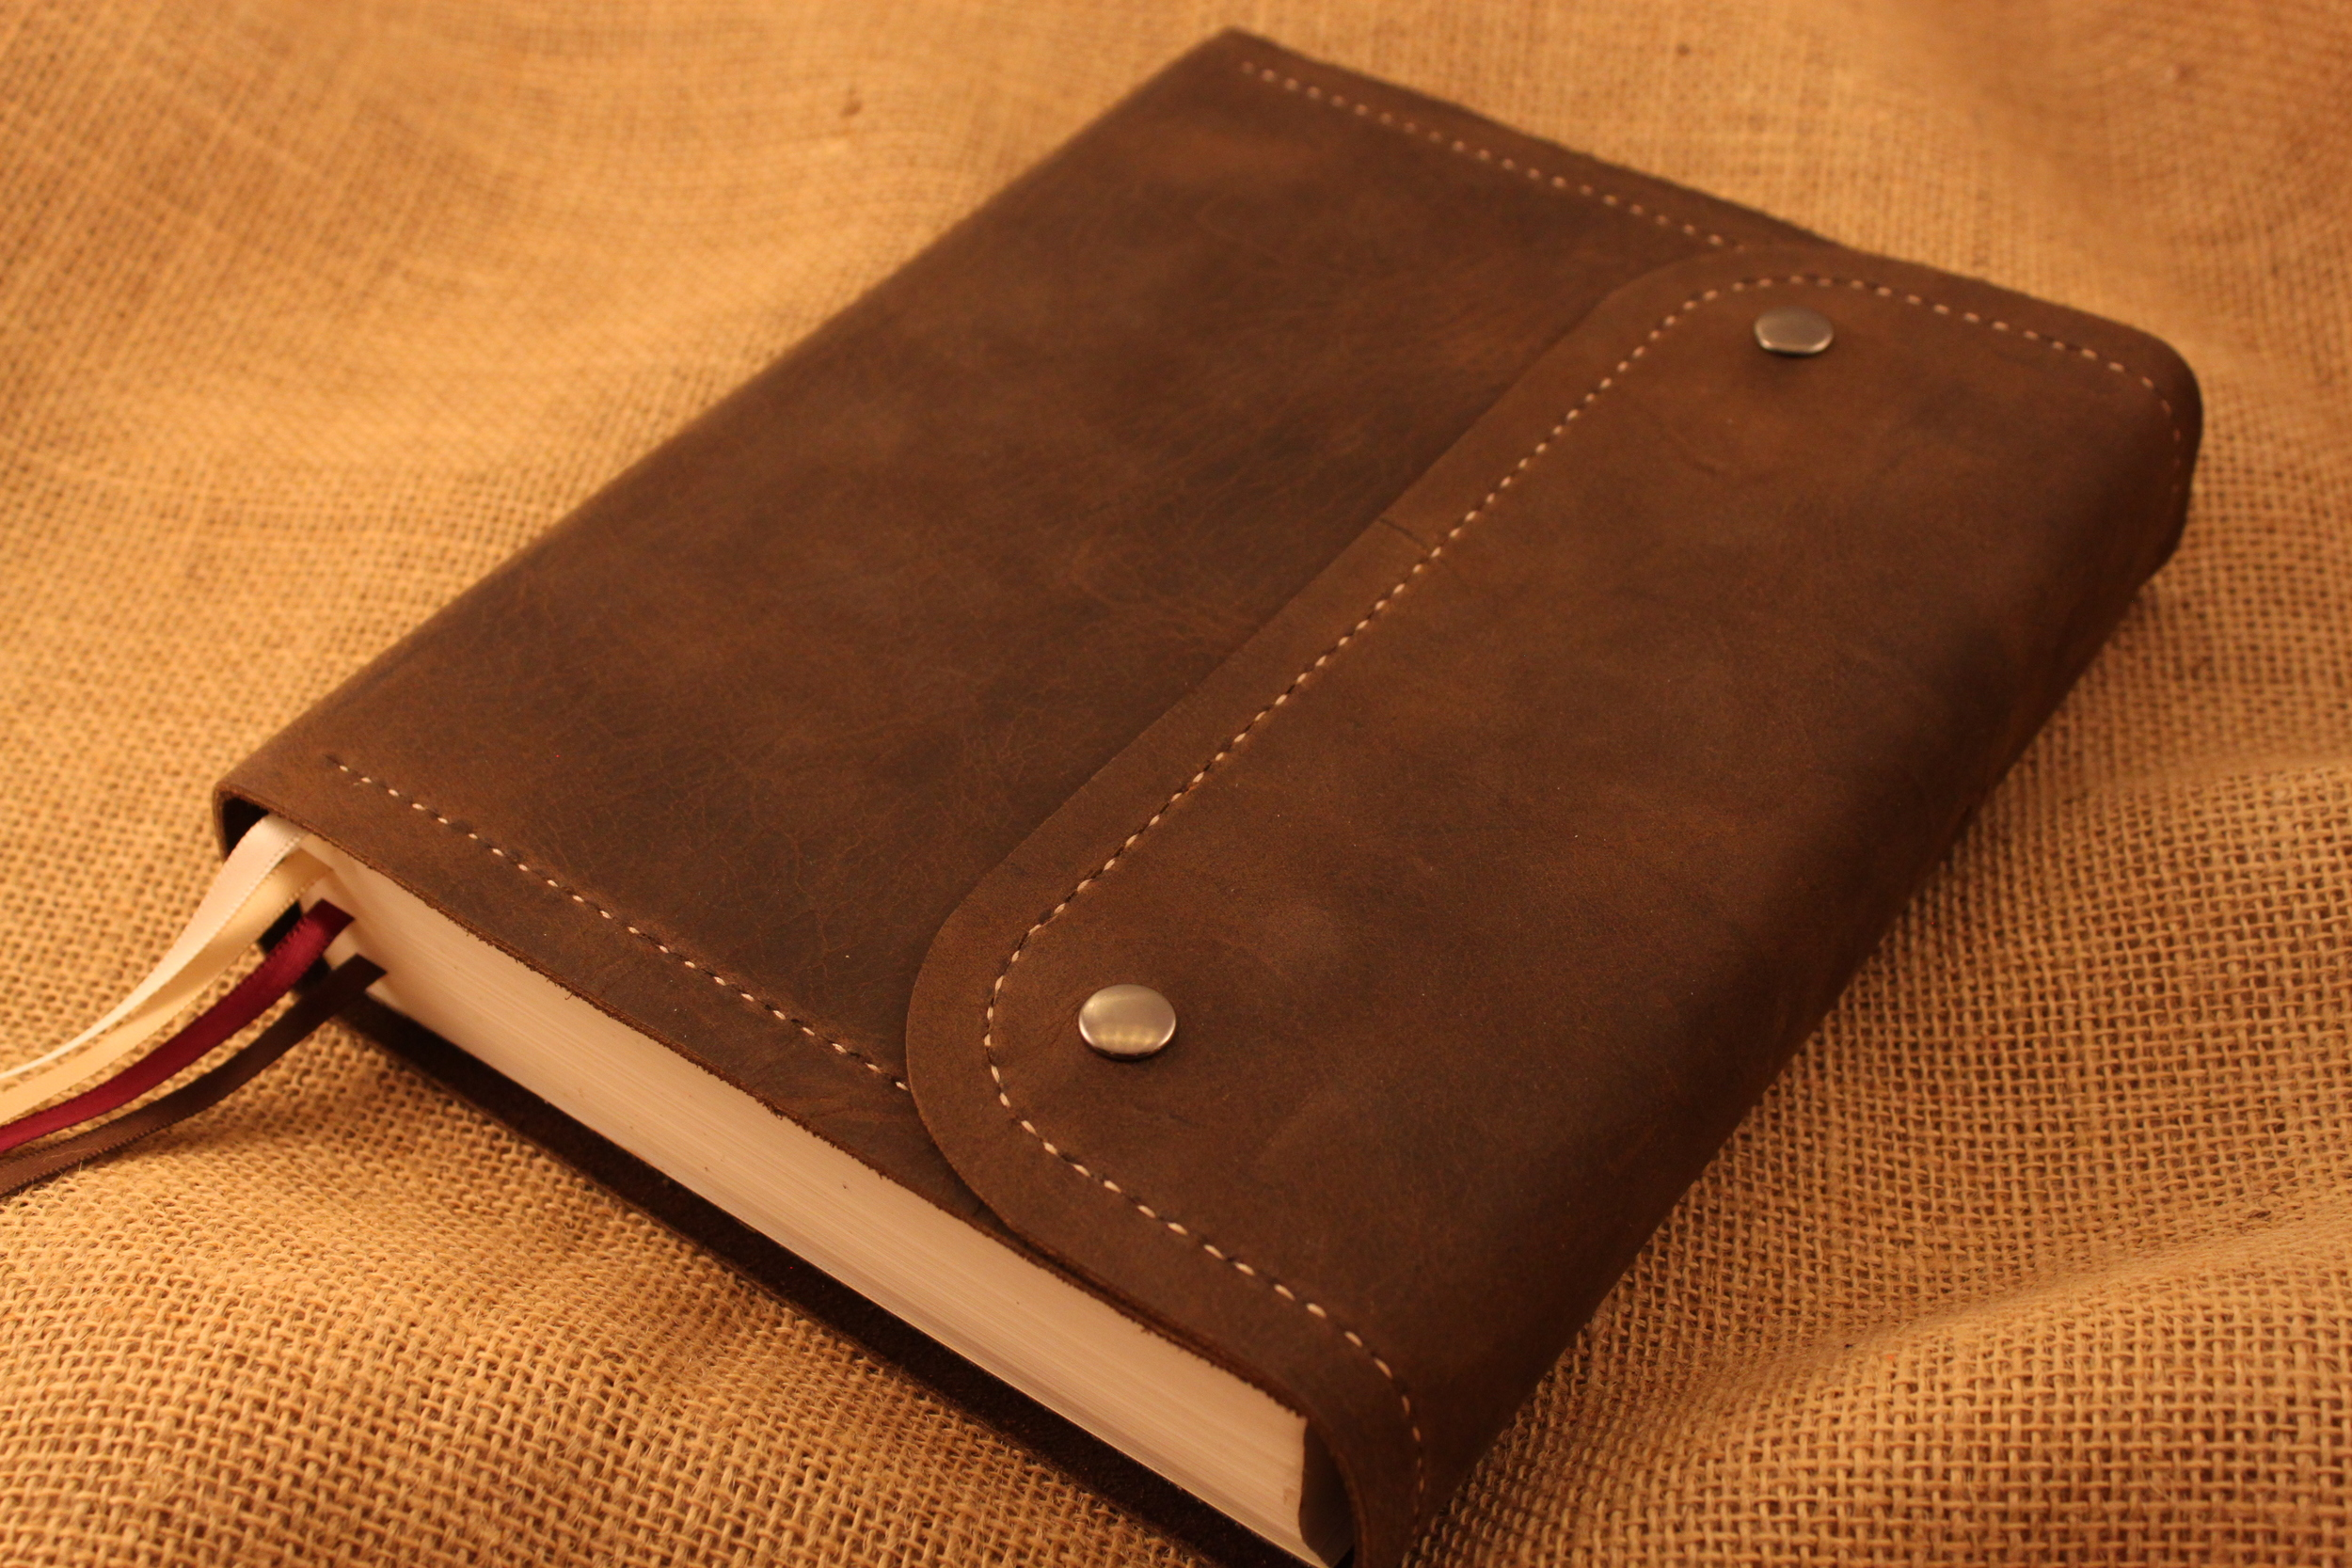 Beautiful distressed dark brown leather cover